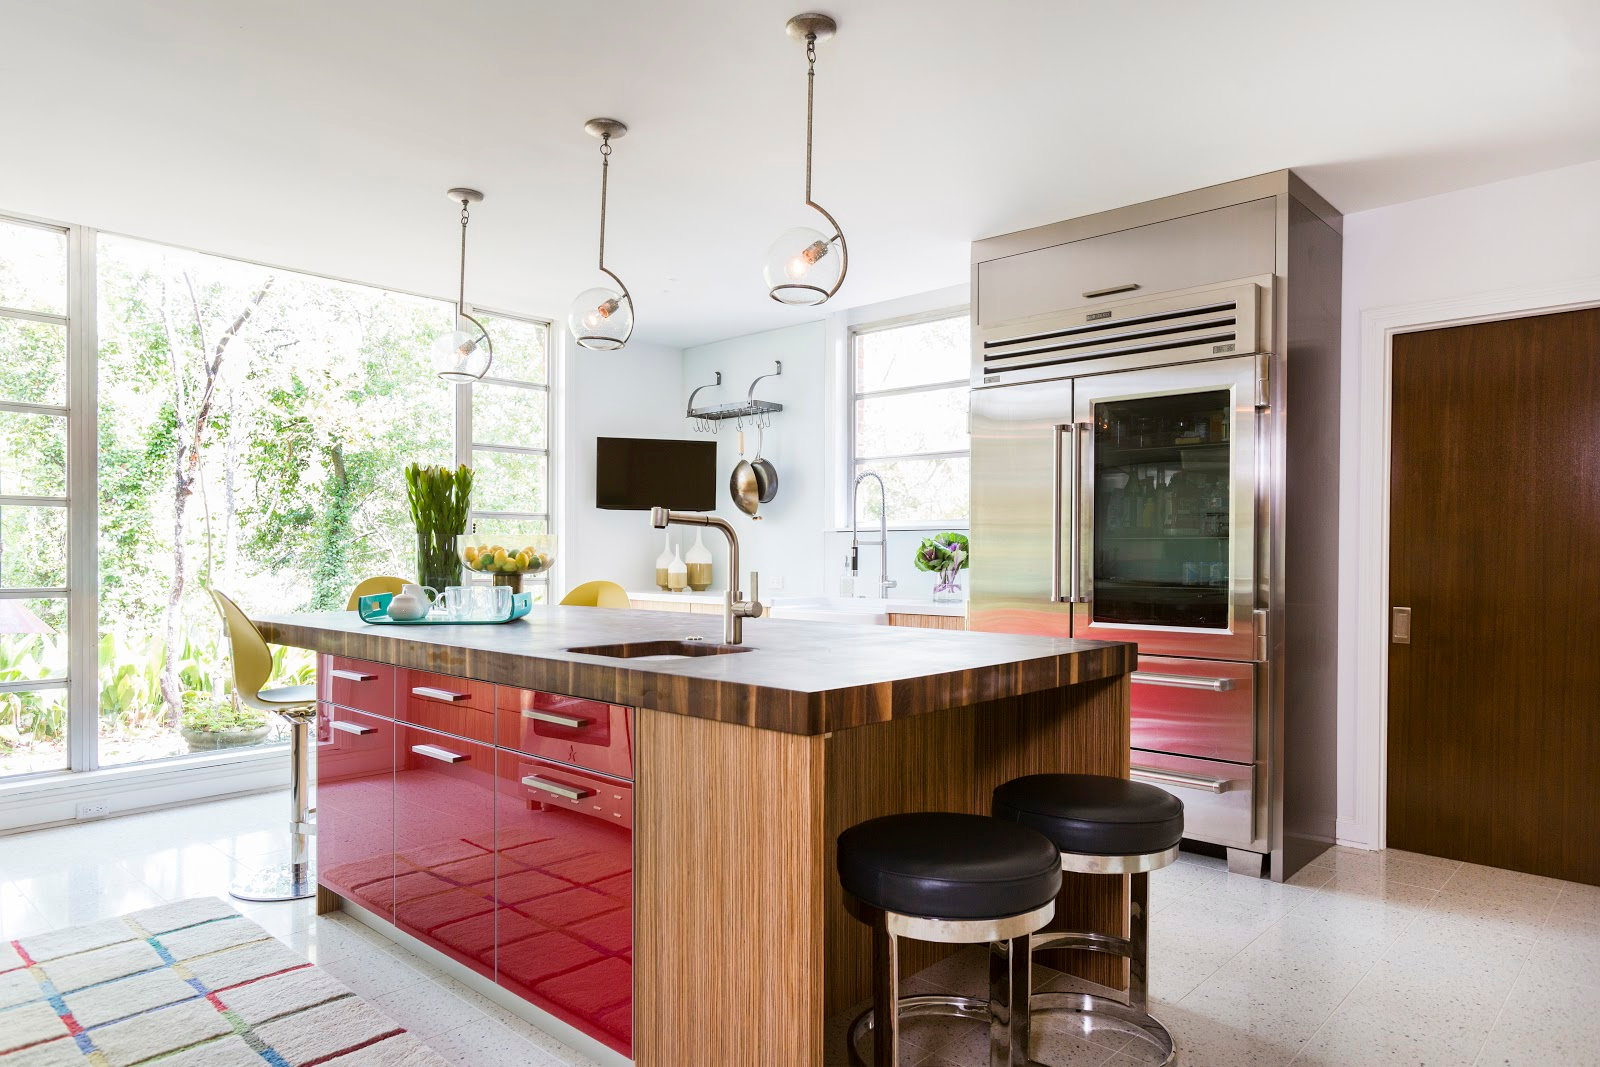 Open concept modern kitchen with vibrant red cabinets and stainless steel appliances - Dbh-biz.info Interior Design